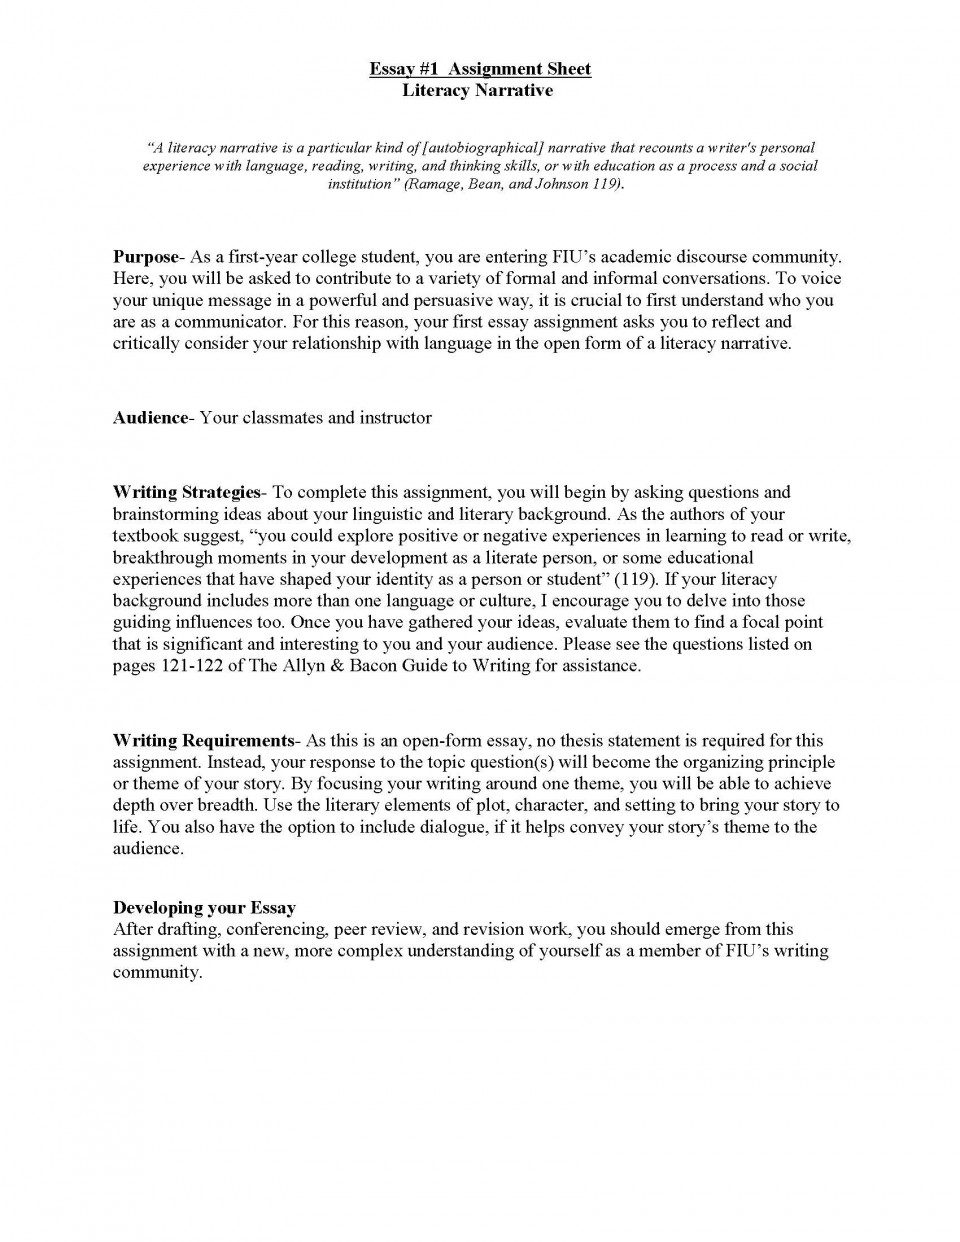 019 Narrative Essays High School Literacy Unit Assignment Spring 2012 Page 1 Unique Essay Examples Personal Pdf 960